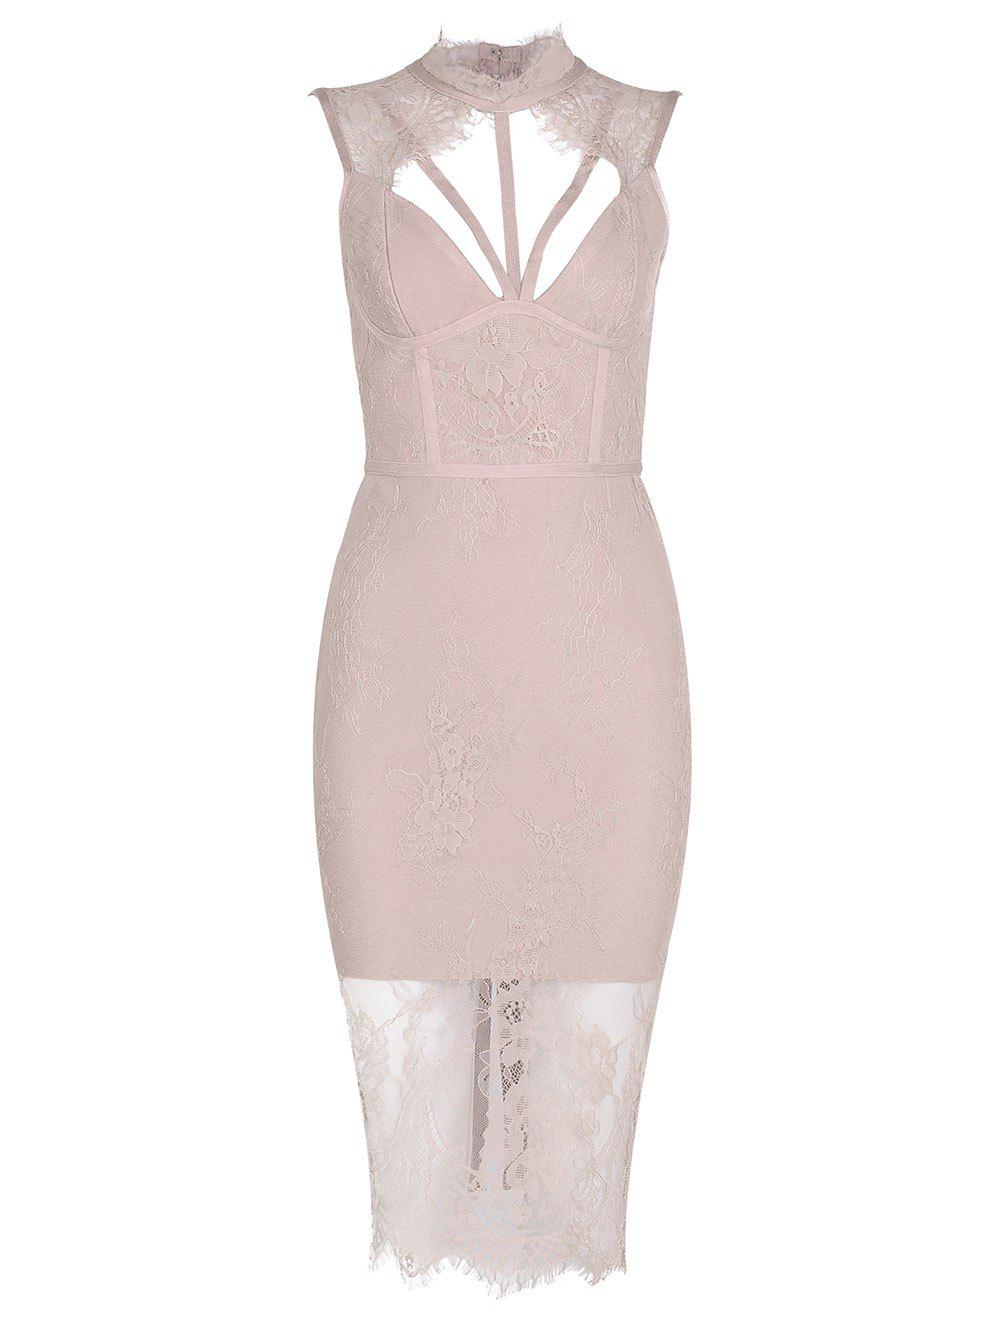 Best Cut Out Mock Neck Lace Bandage Dress